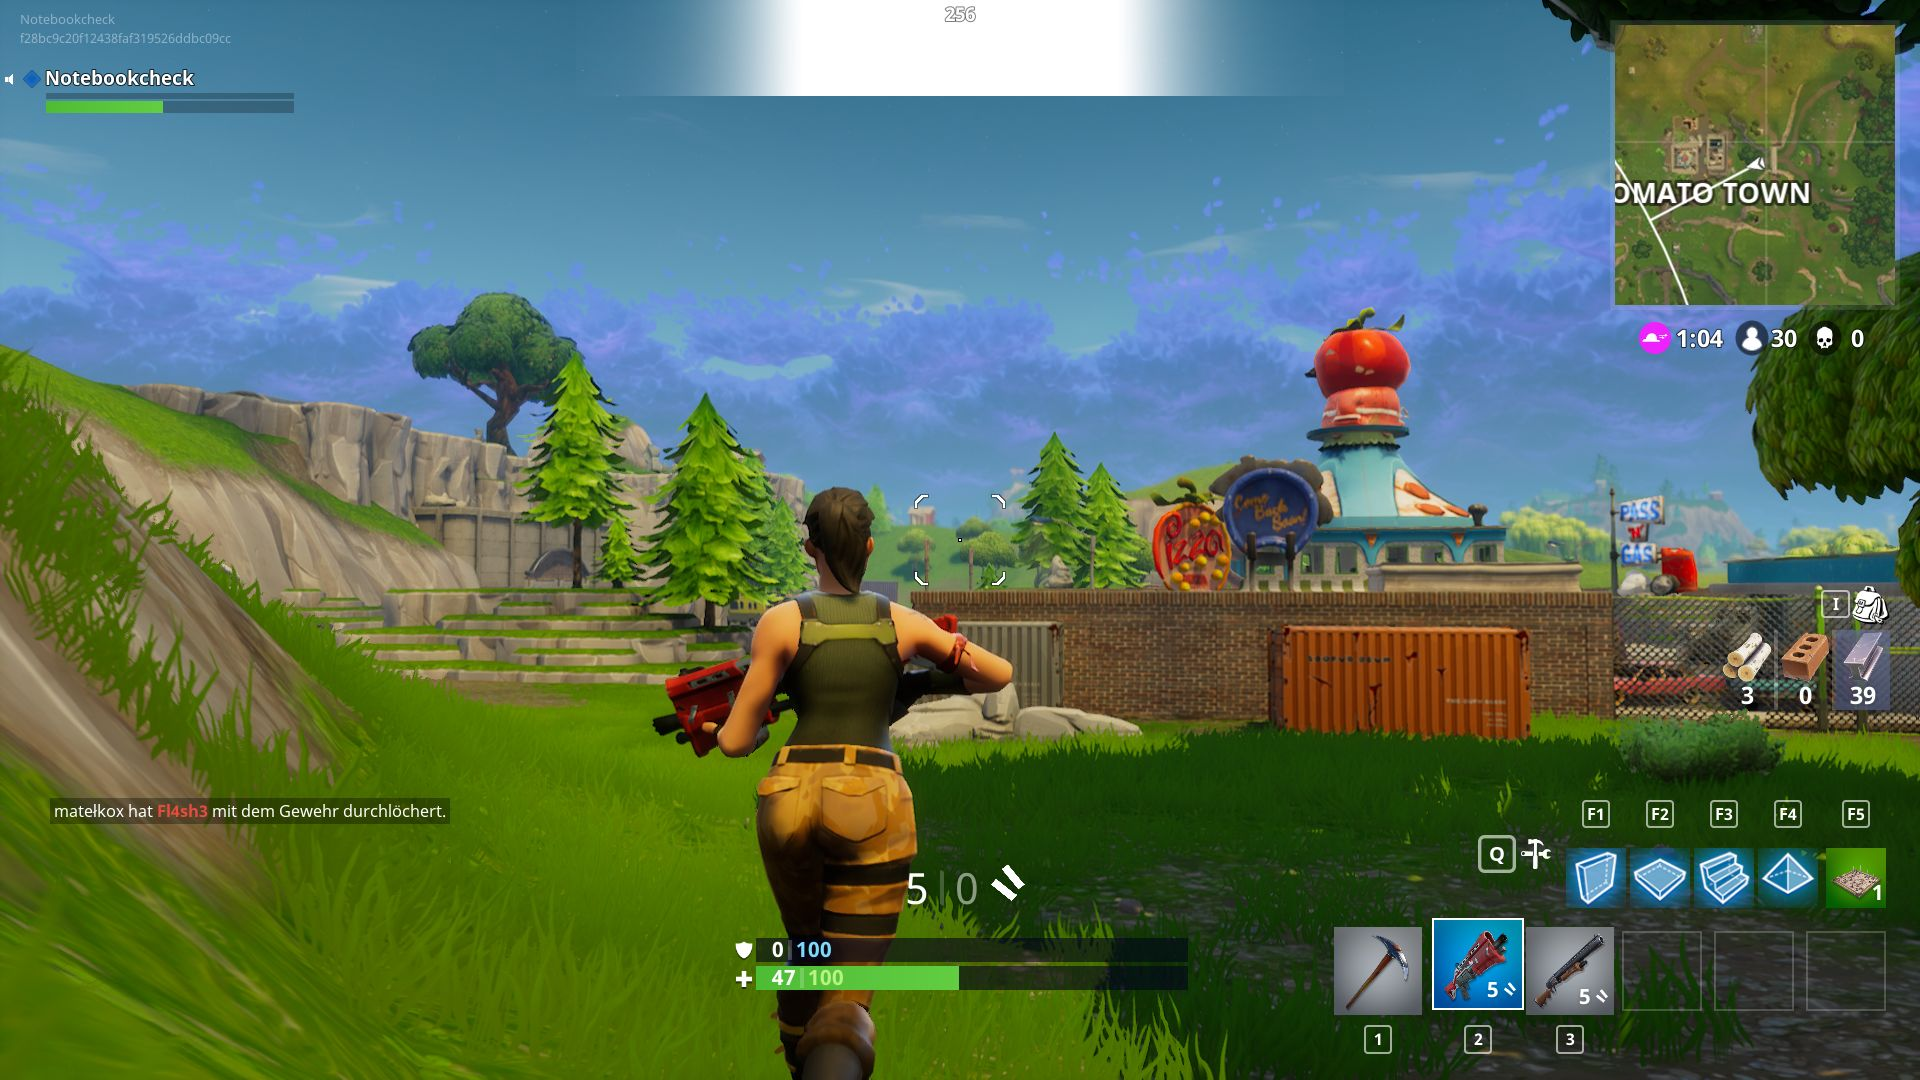 Fortnite Notebook and Desktop Benchmarks - NotebookCheck net